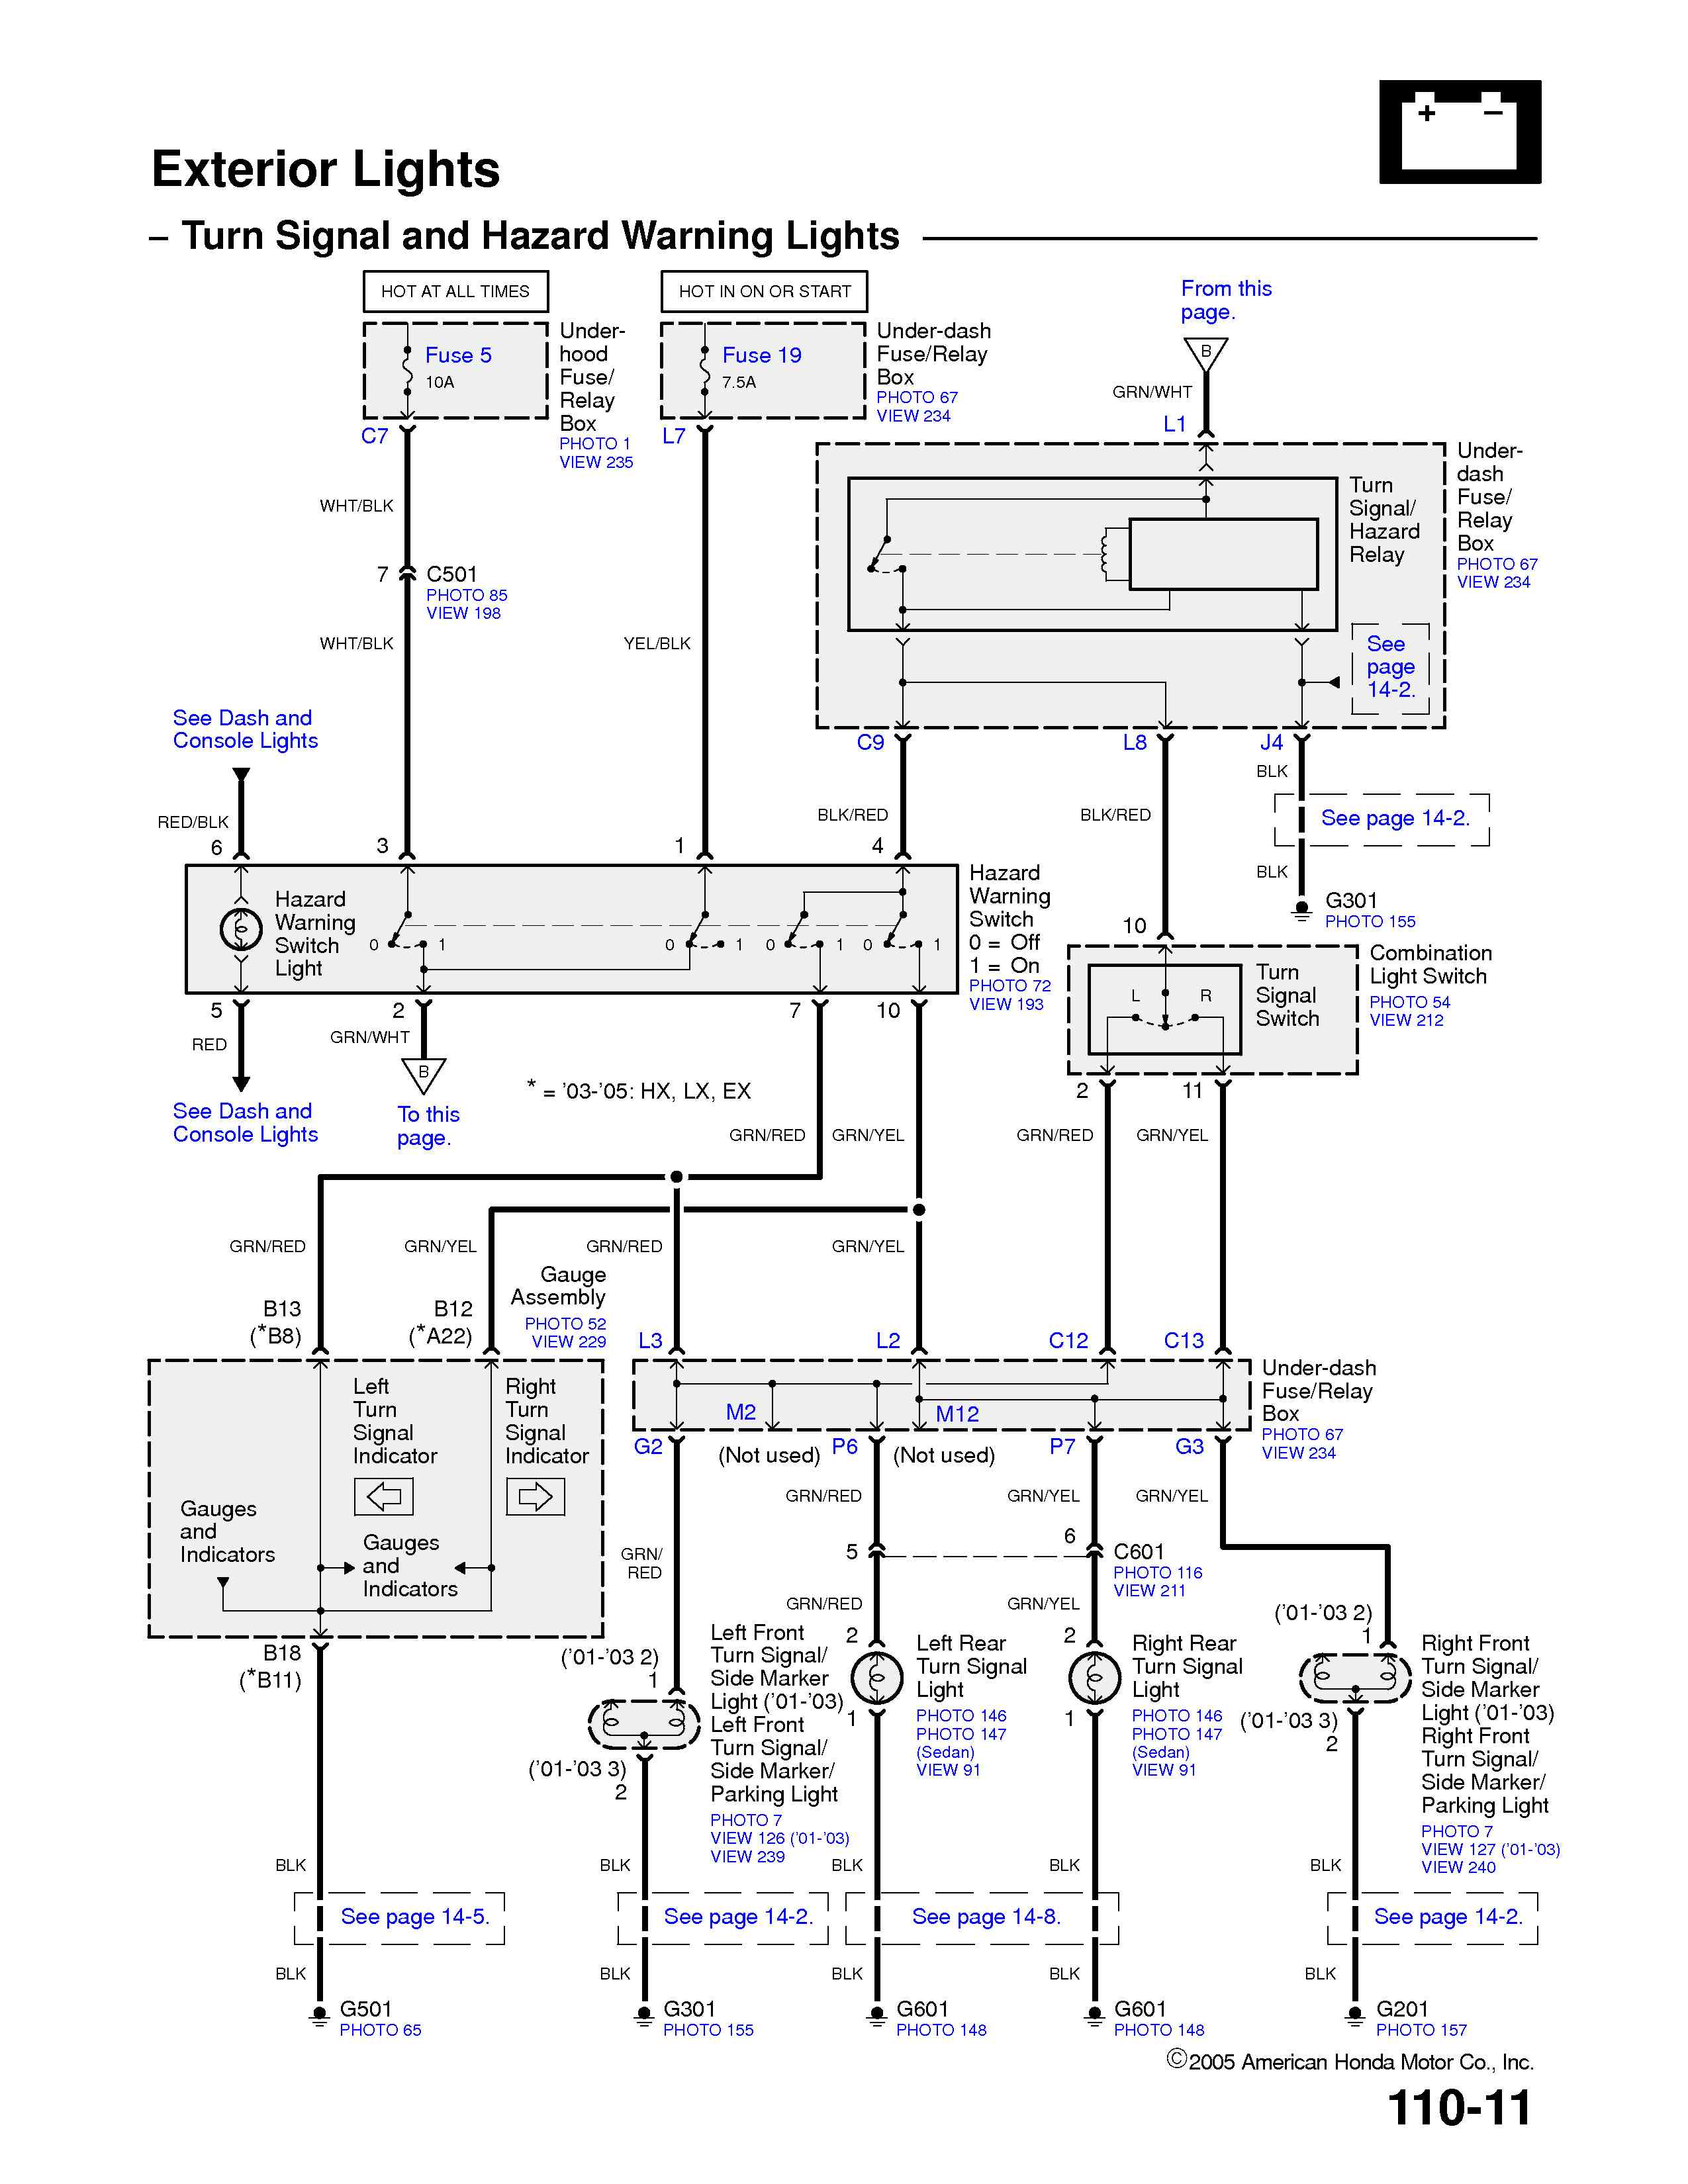 2008 Honda Civic Radio Wiring Diagram from www.justanswer.com